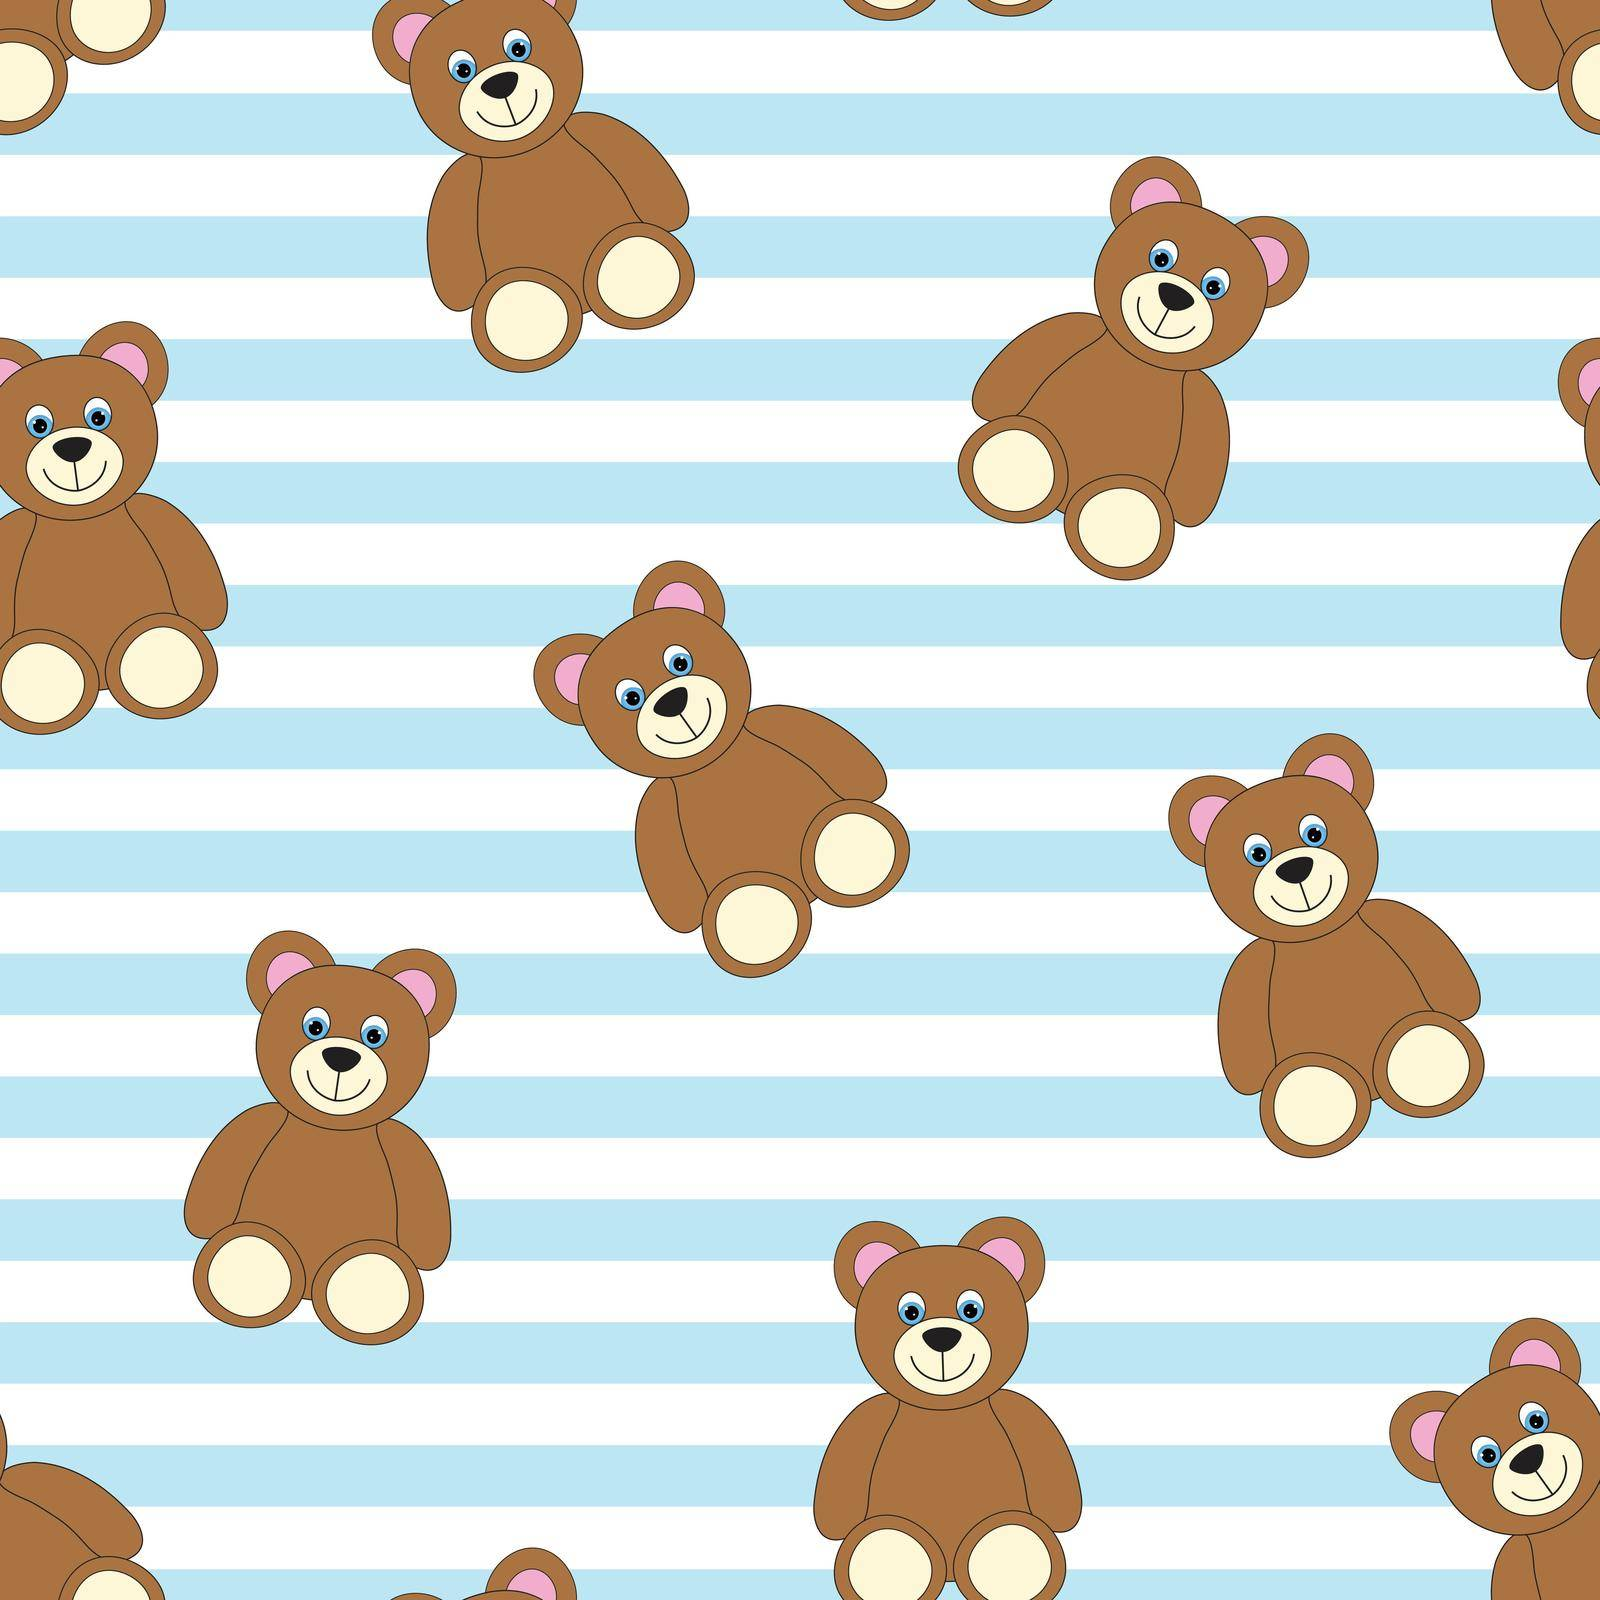 Teddy bears on white and light blue striped background. Cute baby seamless pattern.